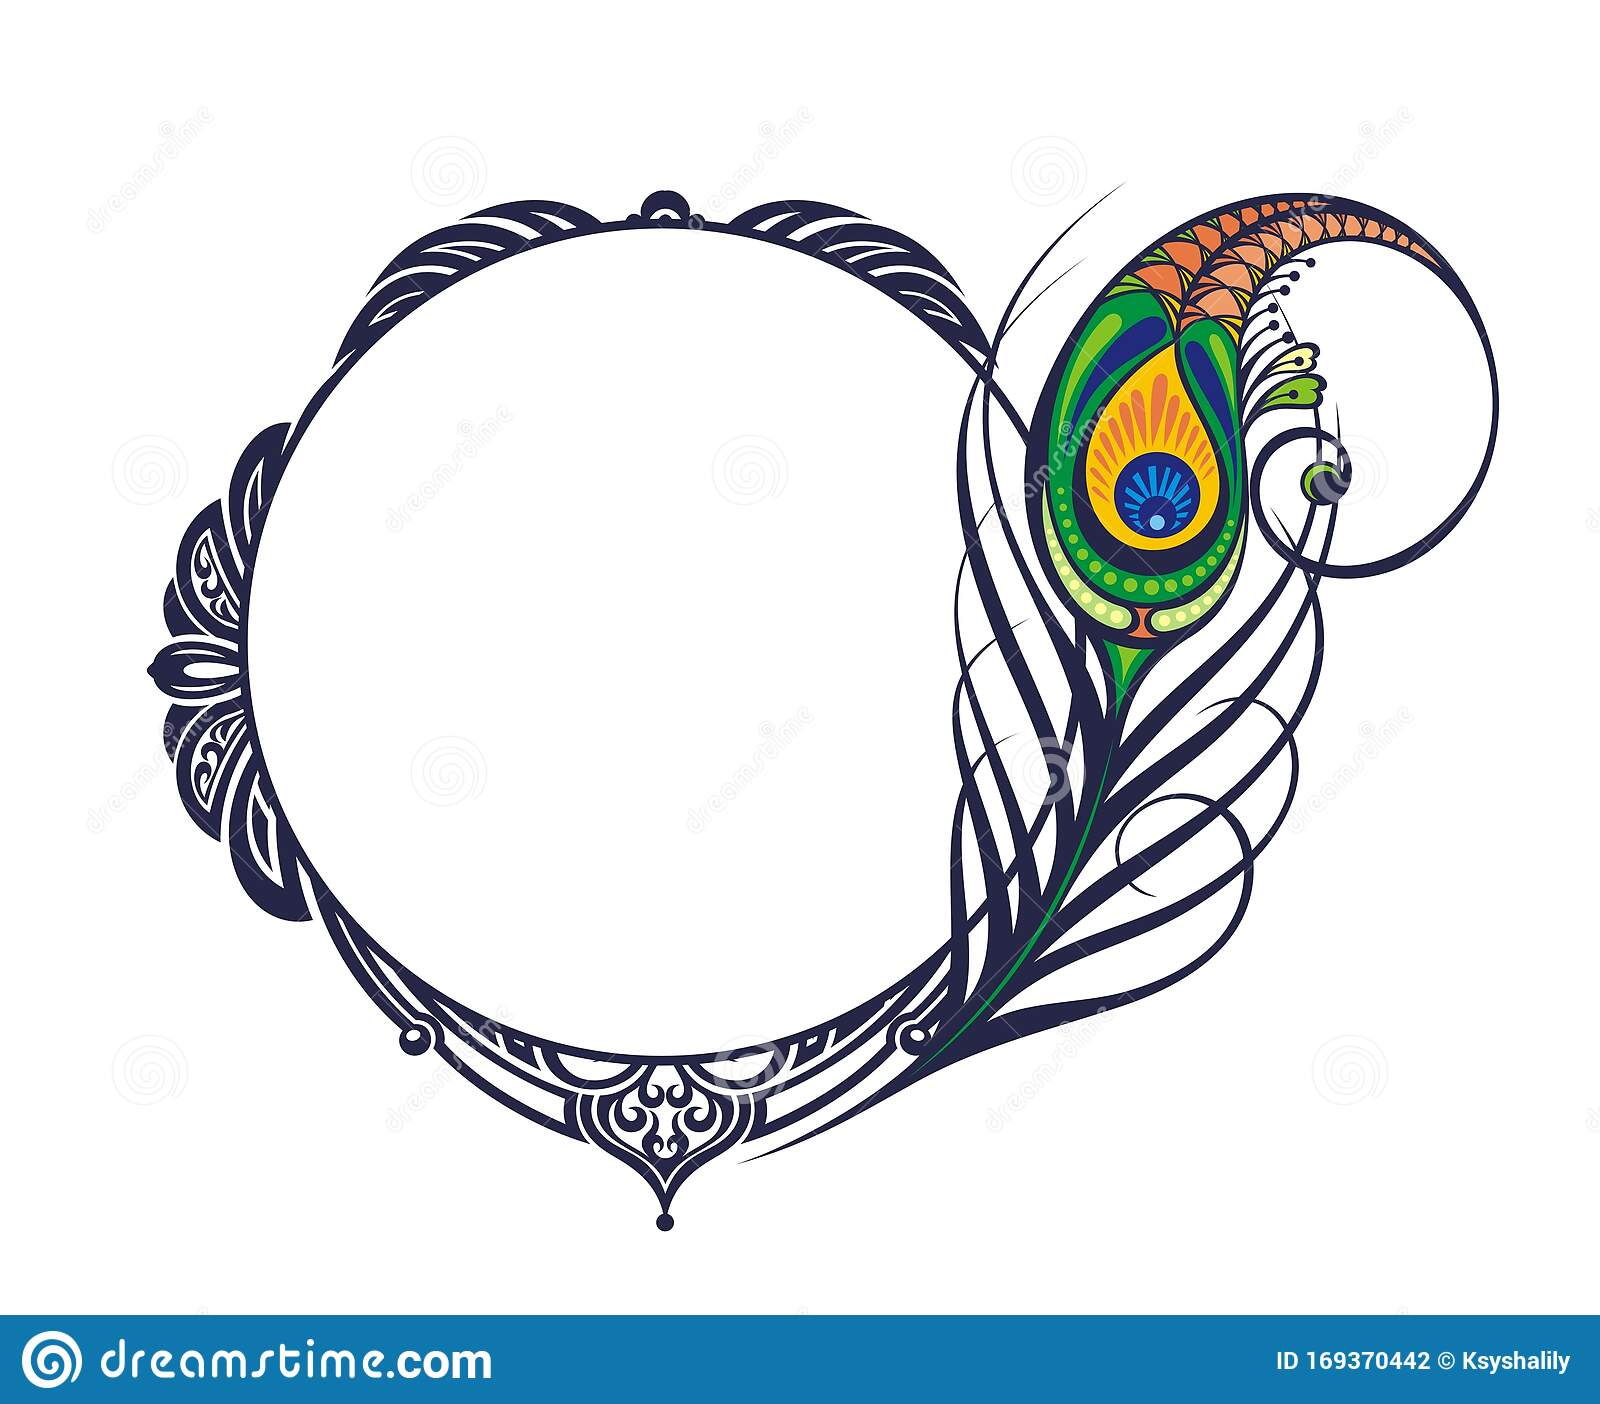 peacock feather vector isolated peacock feather frame stock vector illustration of drawing peacock 169370442 https www dreamstime com peacock feather vector isolated peacock feather frame abstract frame peacock feather vector isolated peacock feather frame image169370442